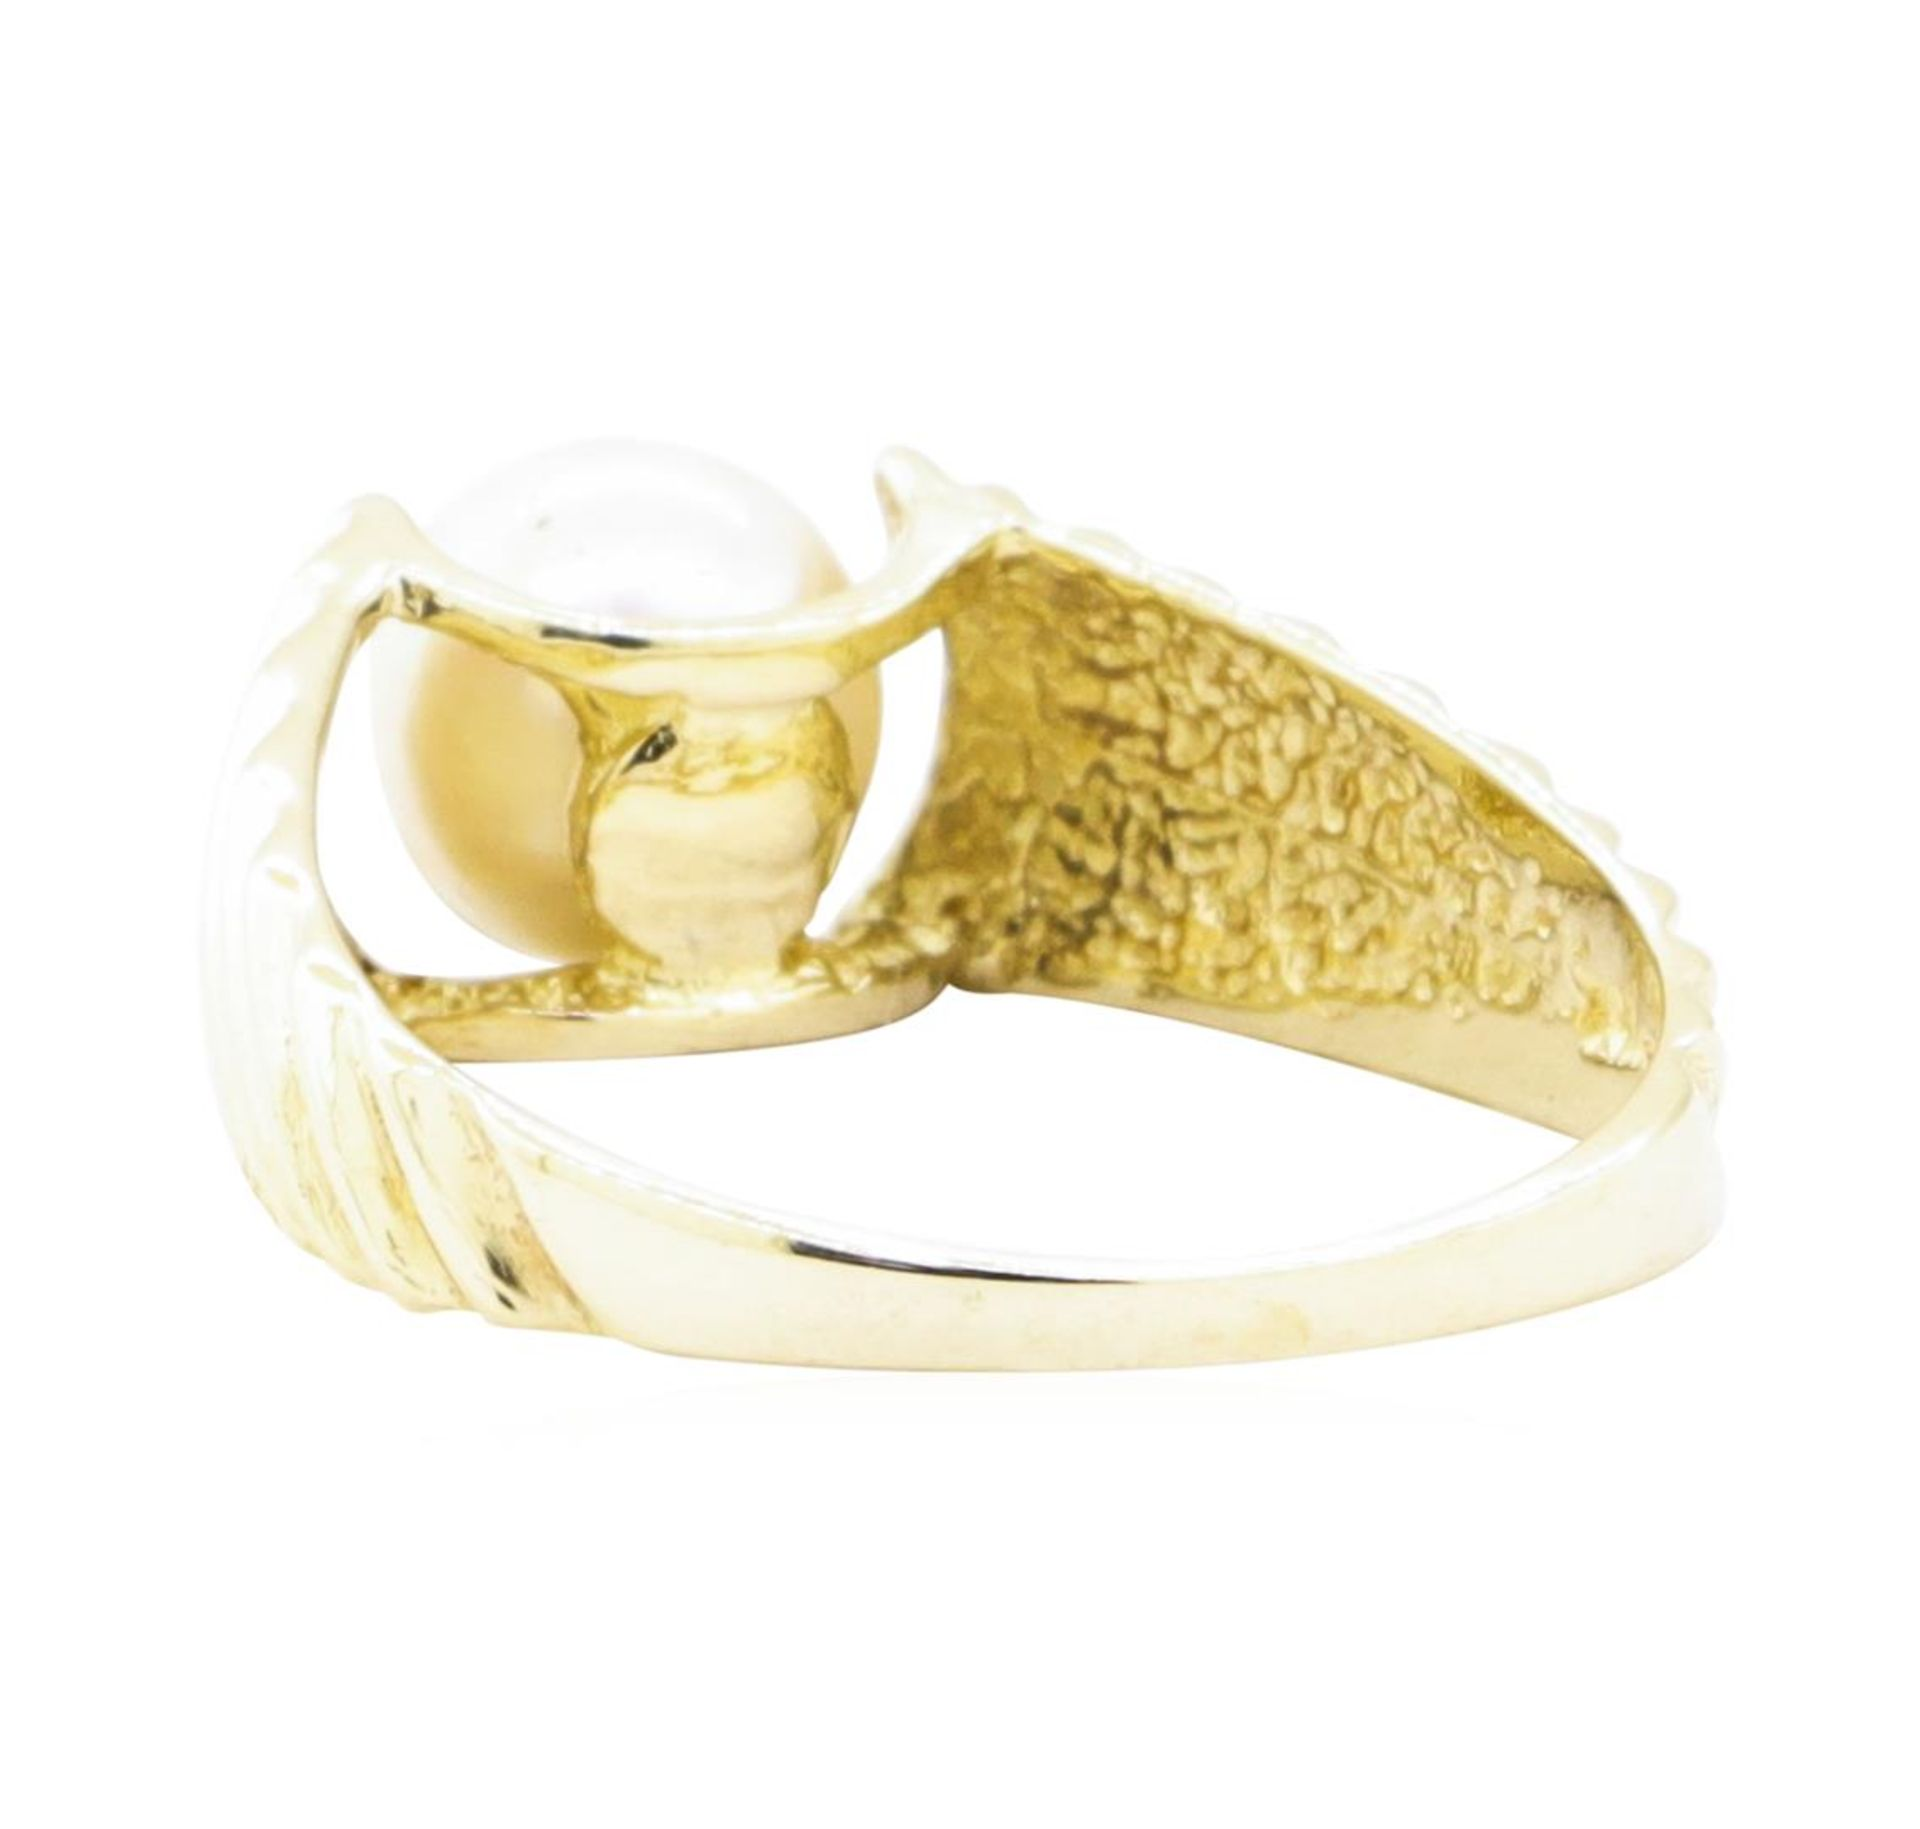 7mm Cultured Pearl Ring - 14KT Yellow Gold - Image 3 of 4